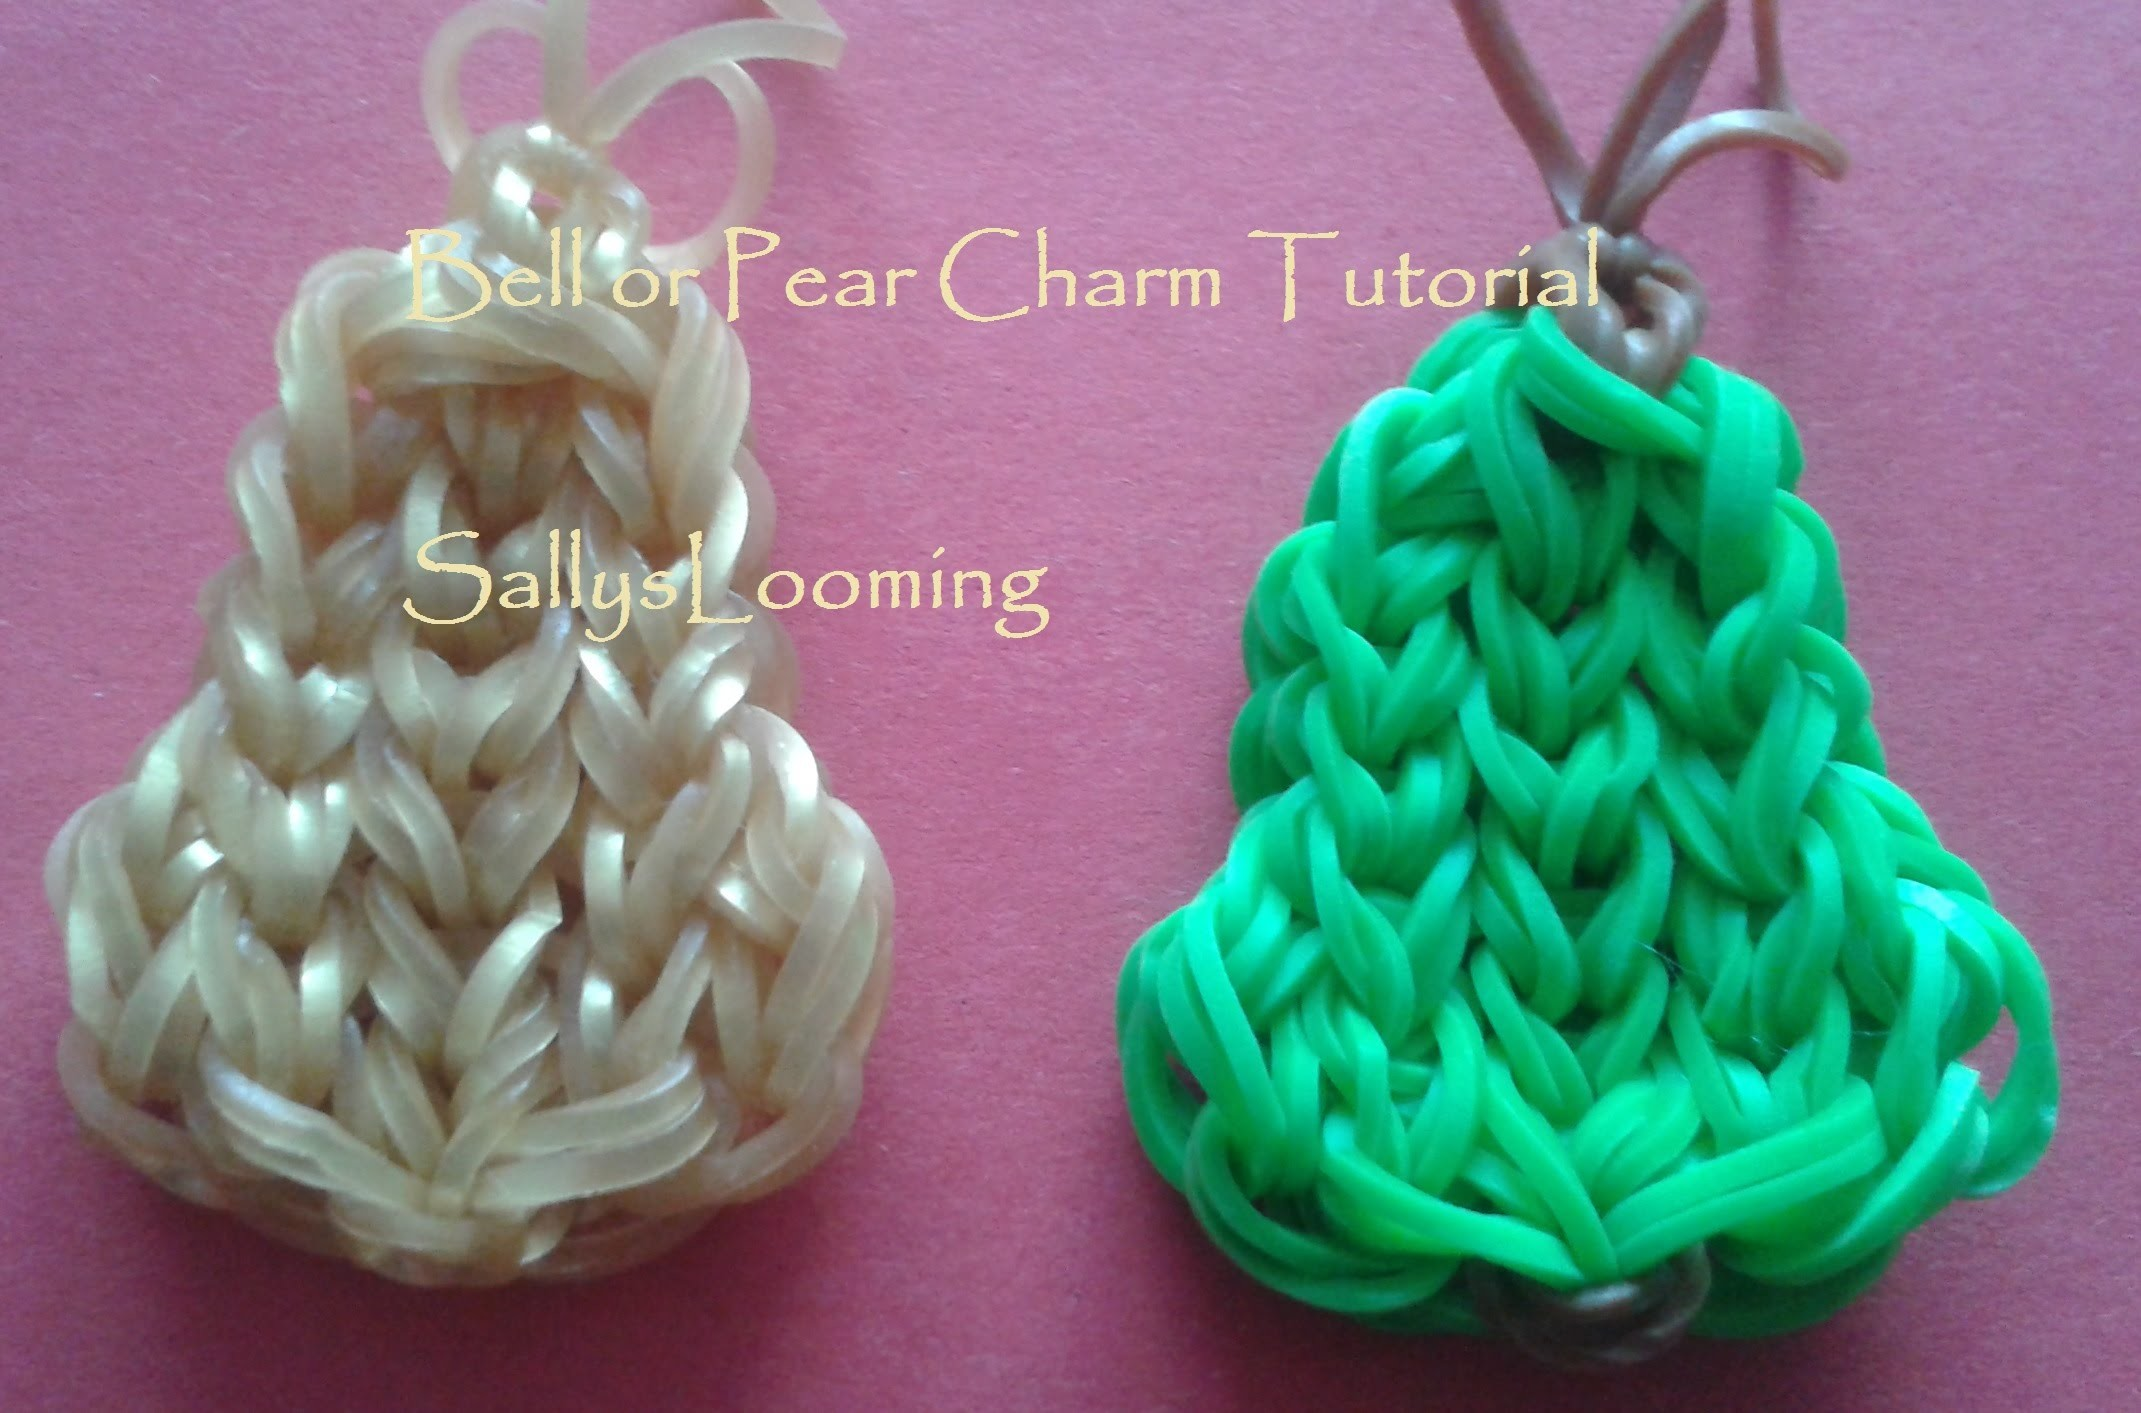 Bell or Pear Charm Loom Band Tutorial